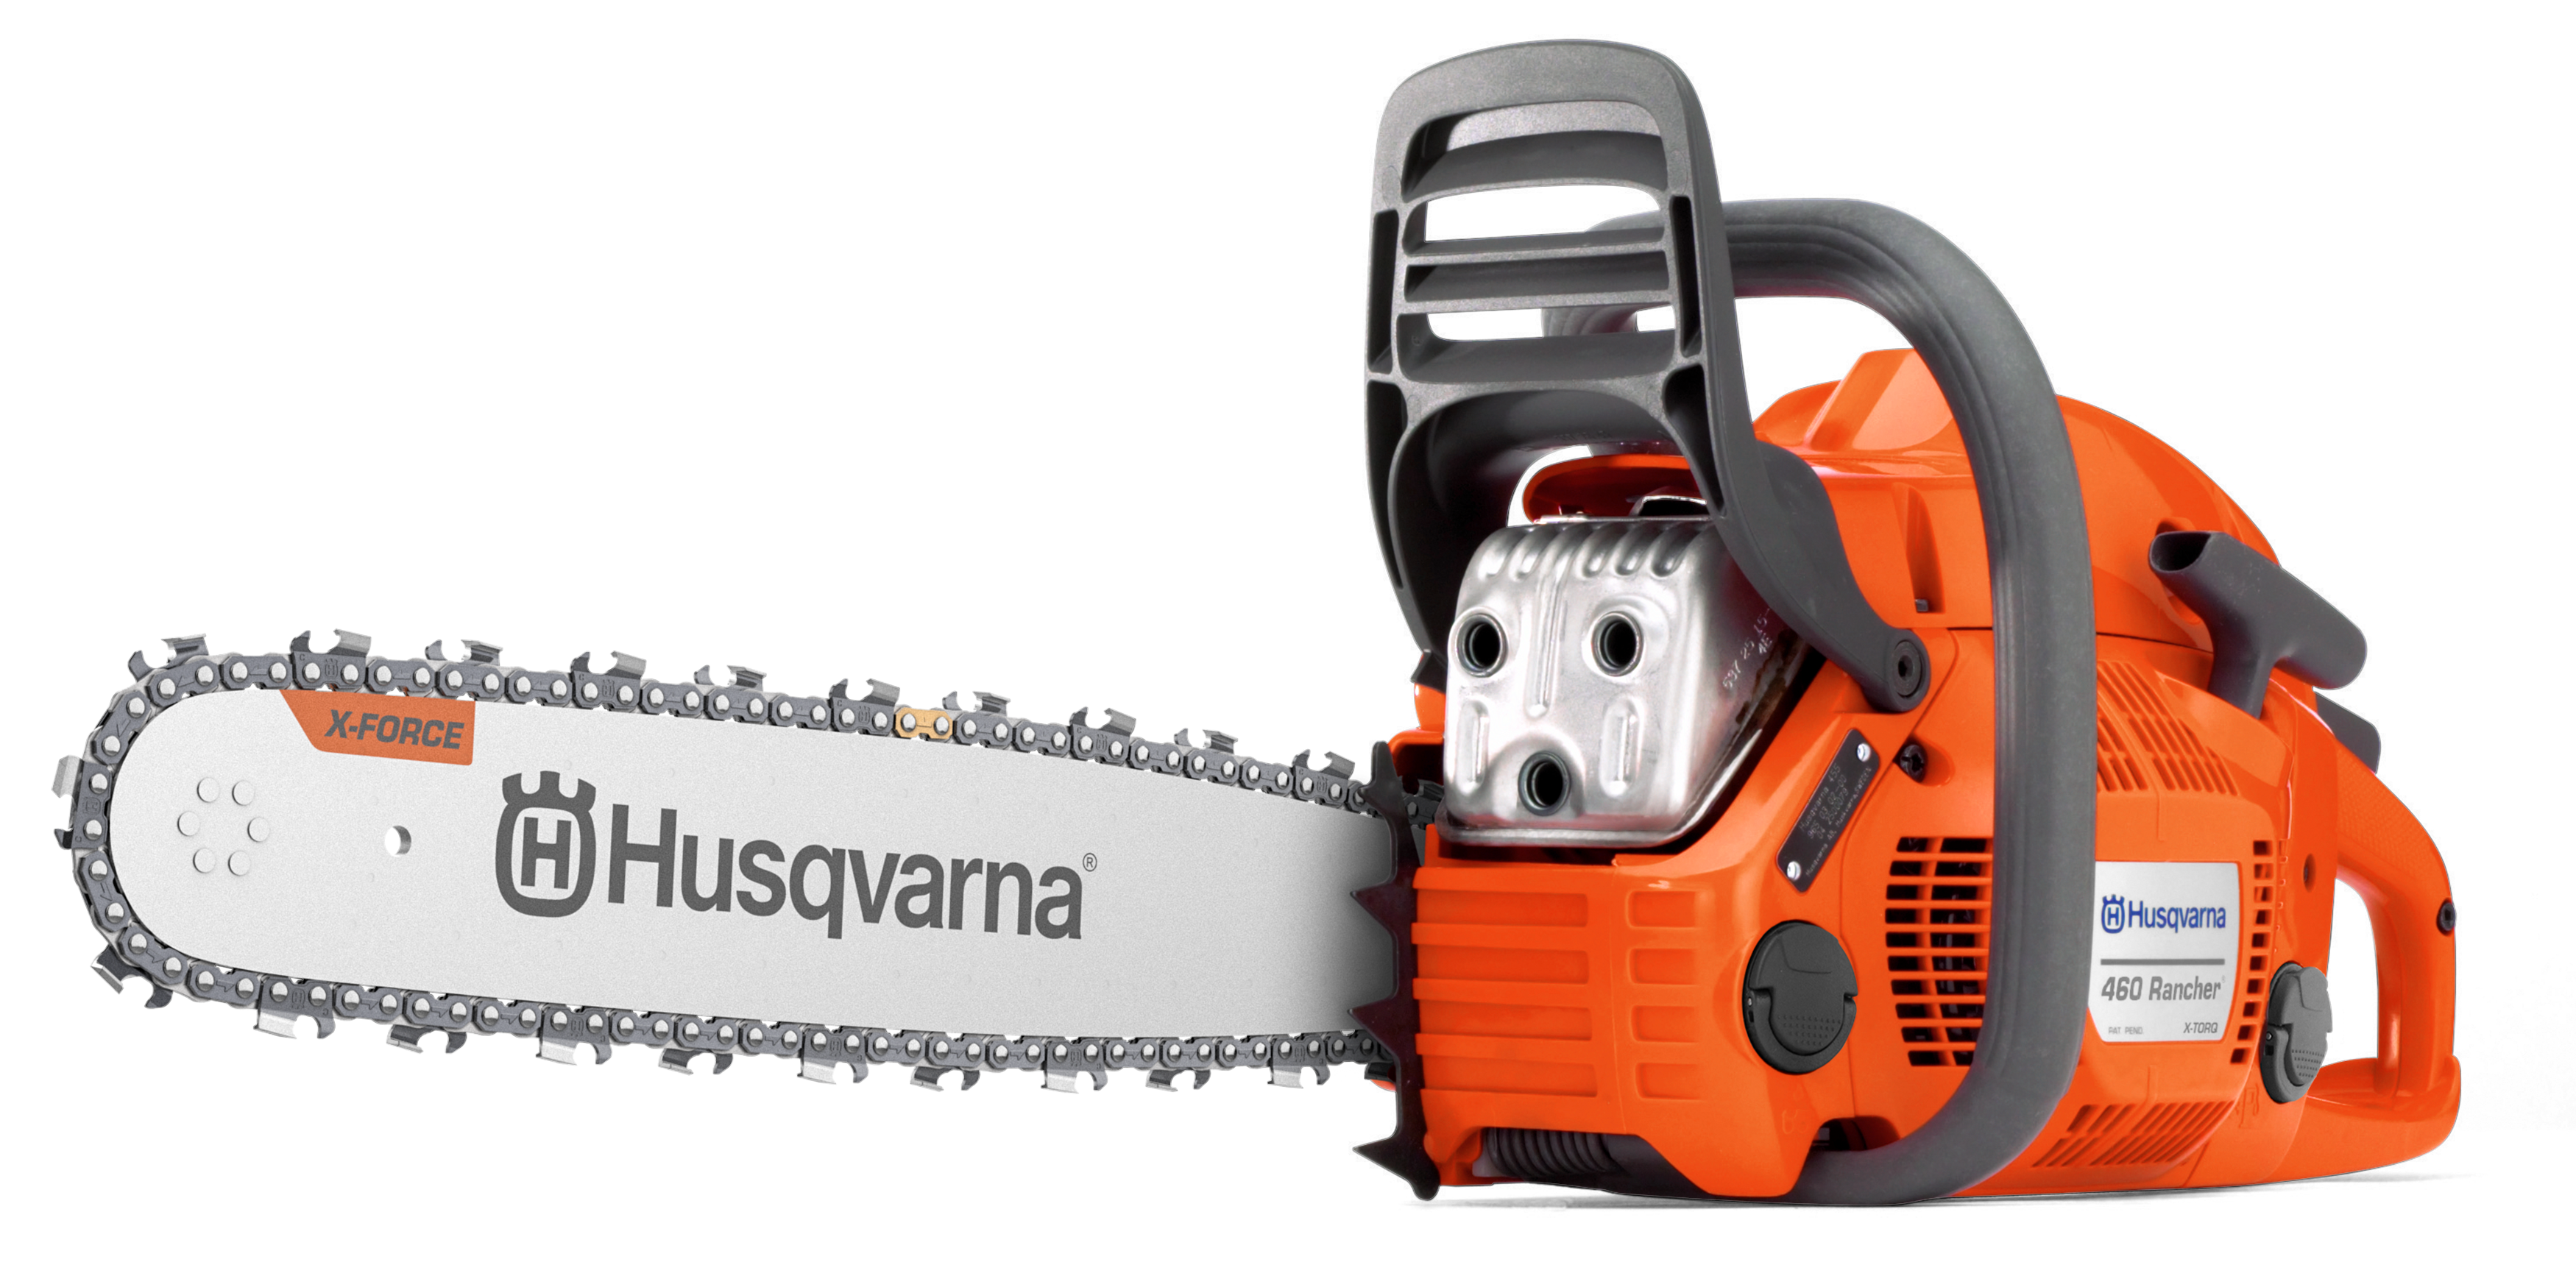 Image for 460 Rancher Gas Chainsaw                                                                                                         from HusqvarnaB2C